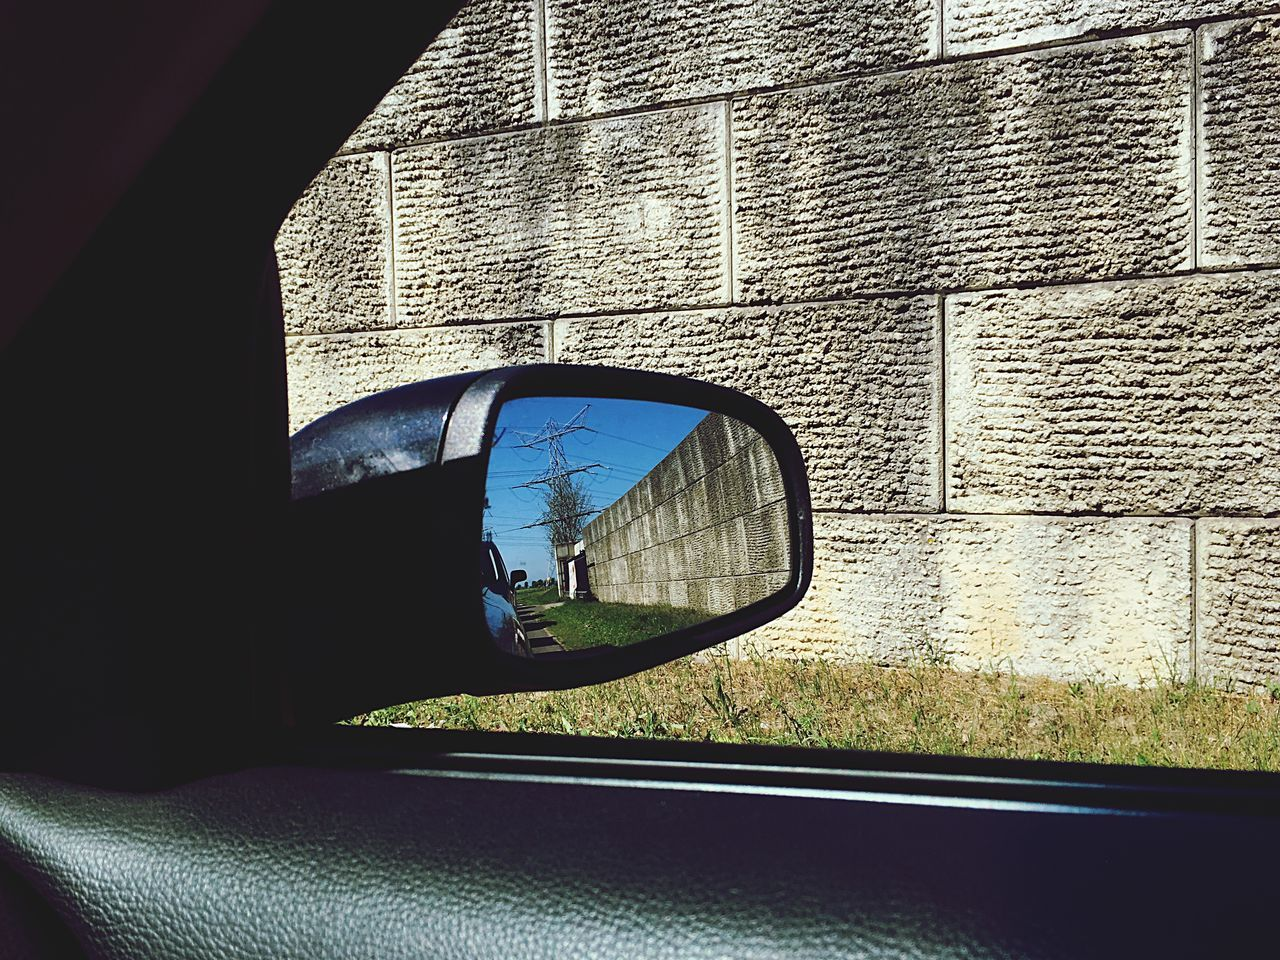 The Wall Side-view Mirror Transportation Reflection Window Vehicle Mirror Mode Of Transport Mirror Car Land Vehicle Day Sunlight Road One Person Real People Architecture Road Trip Built Structure Outdoors People Iphonephotography IPhoneography